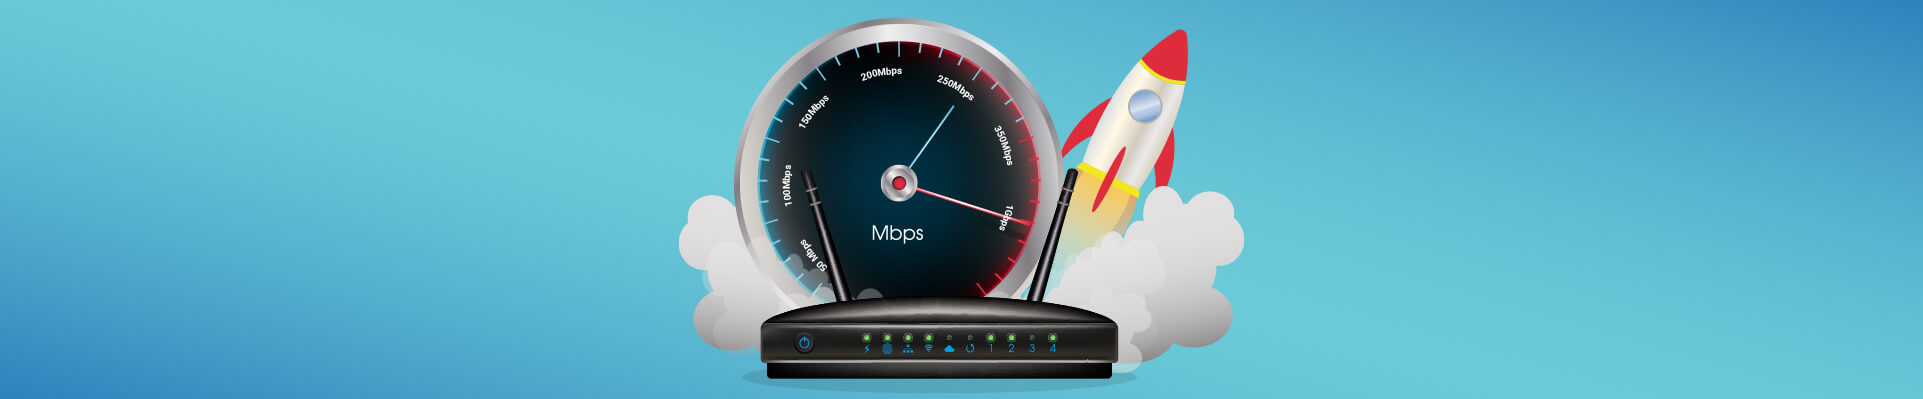 Top 5 reasons why you need to upgrade your router